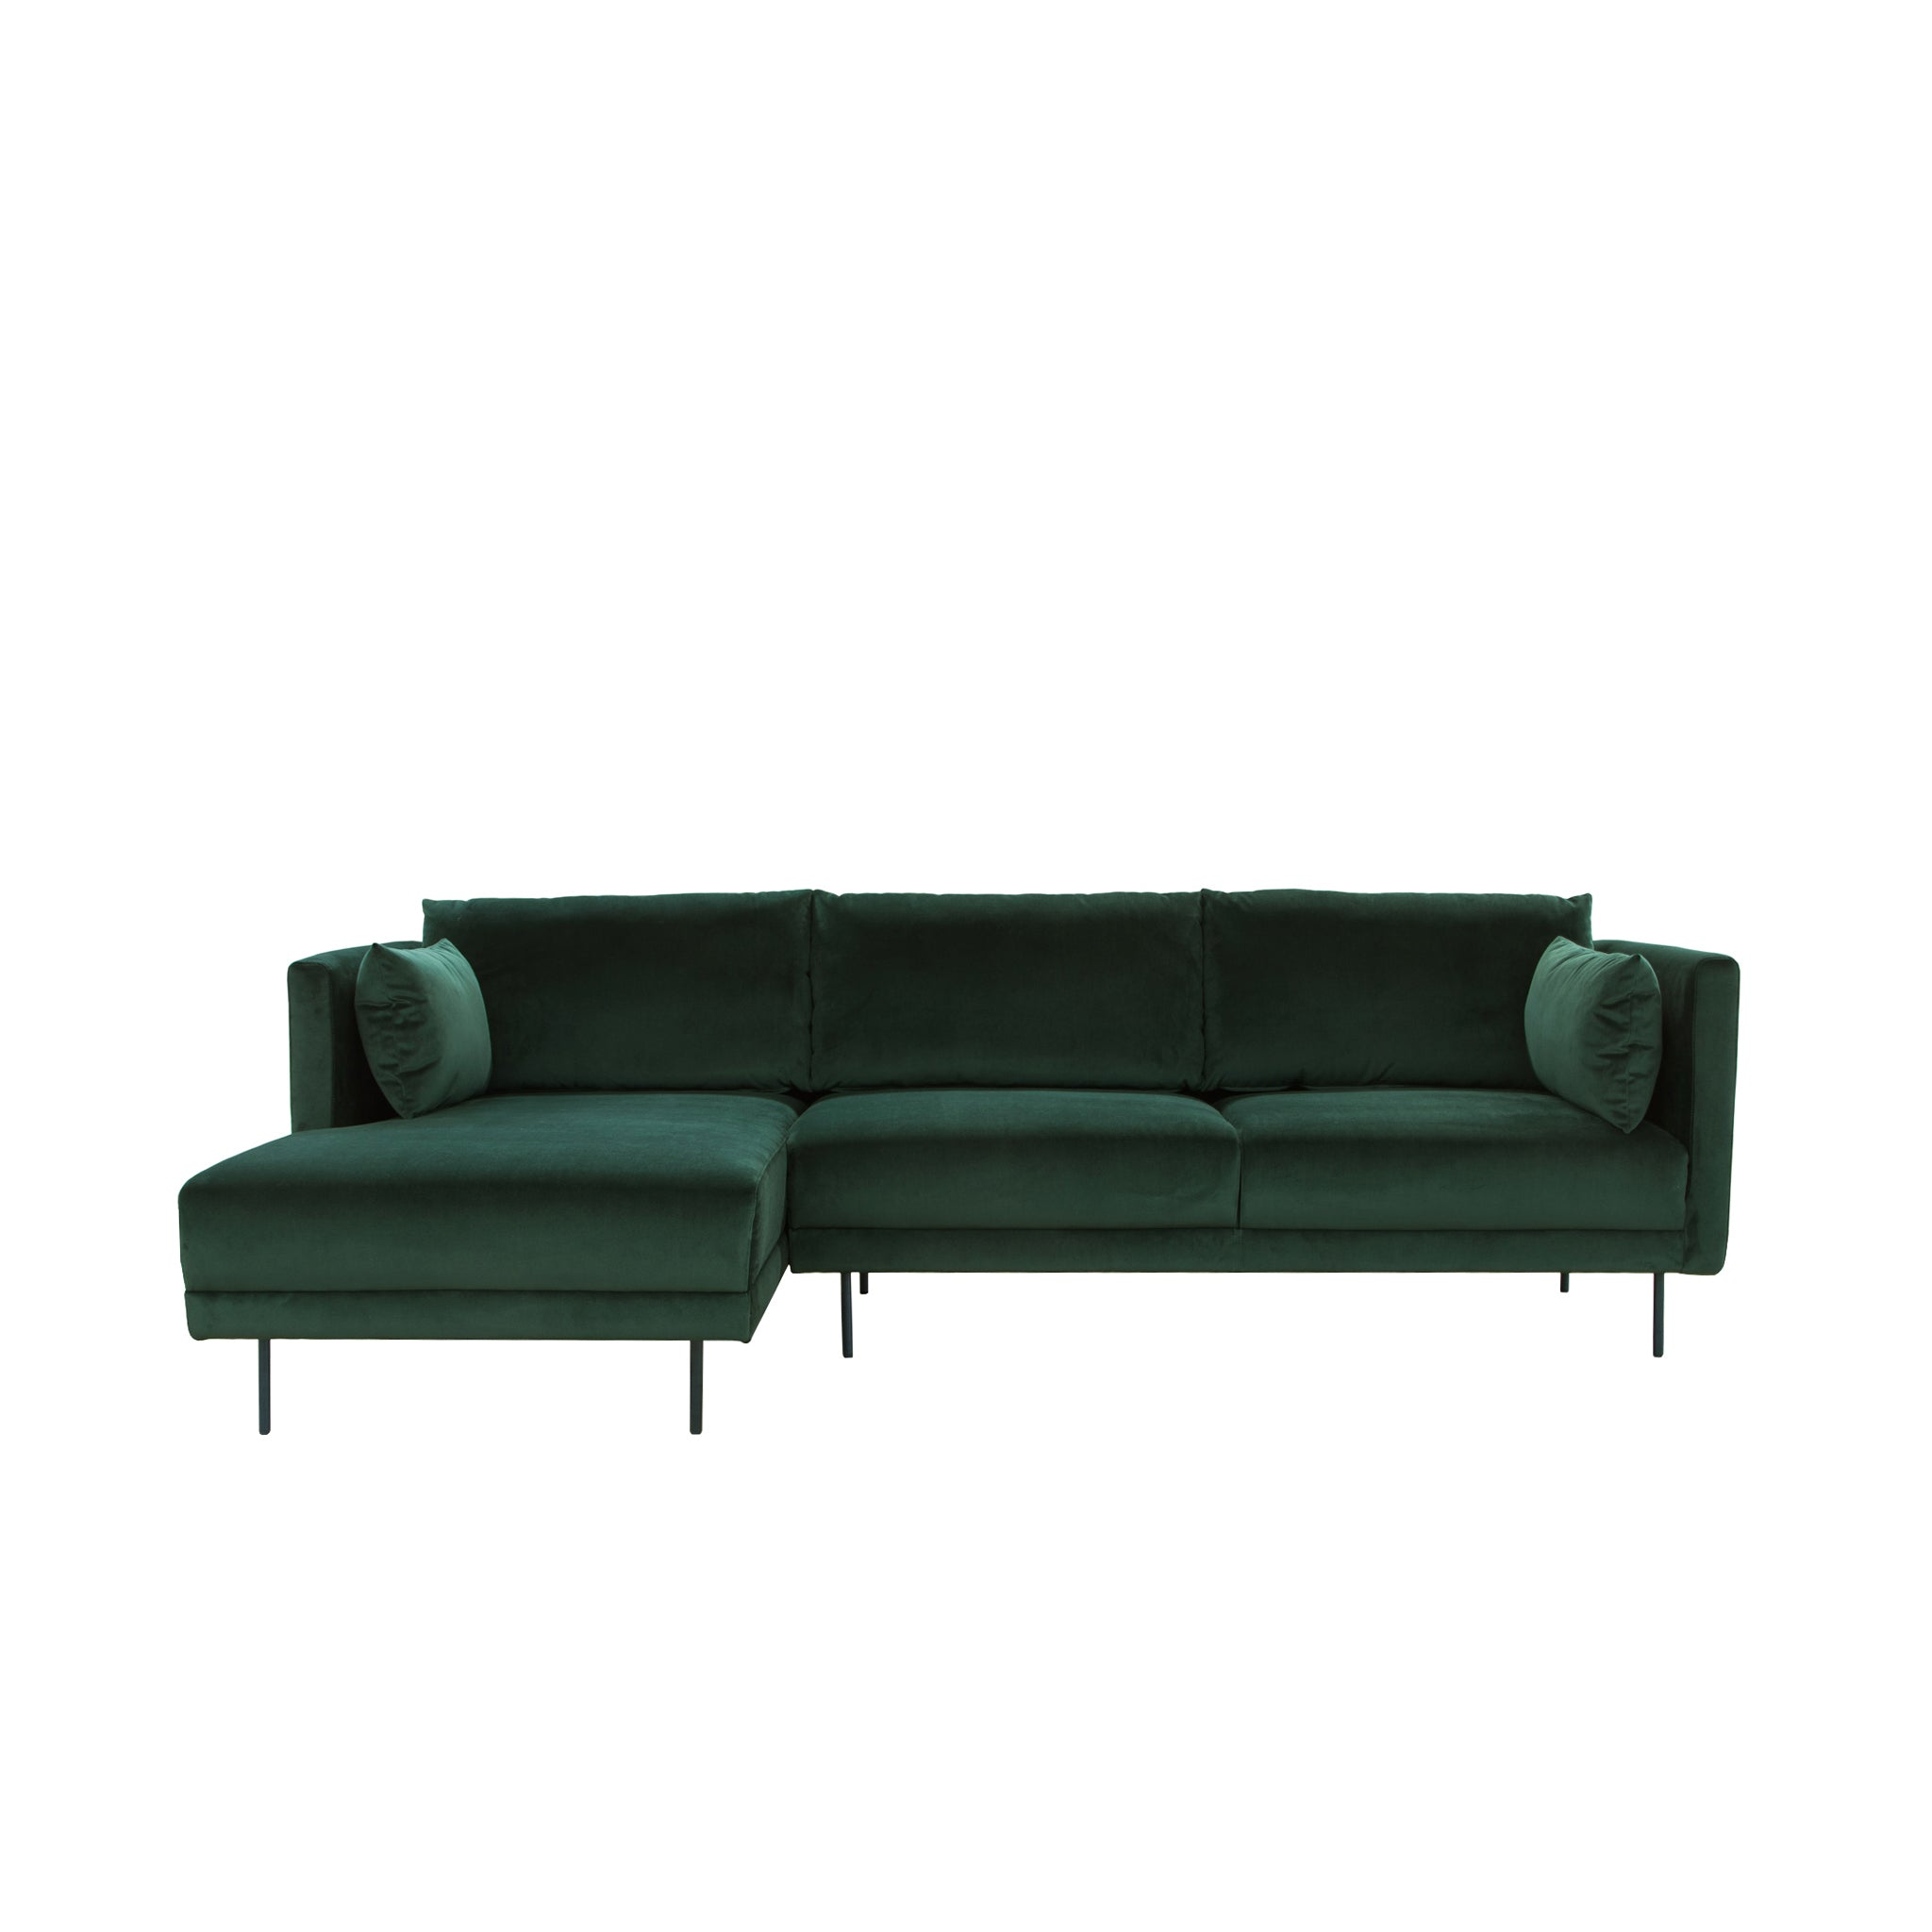 Glasgow 3 Seater Chaise Lounge Left Velvet Green